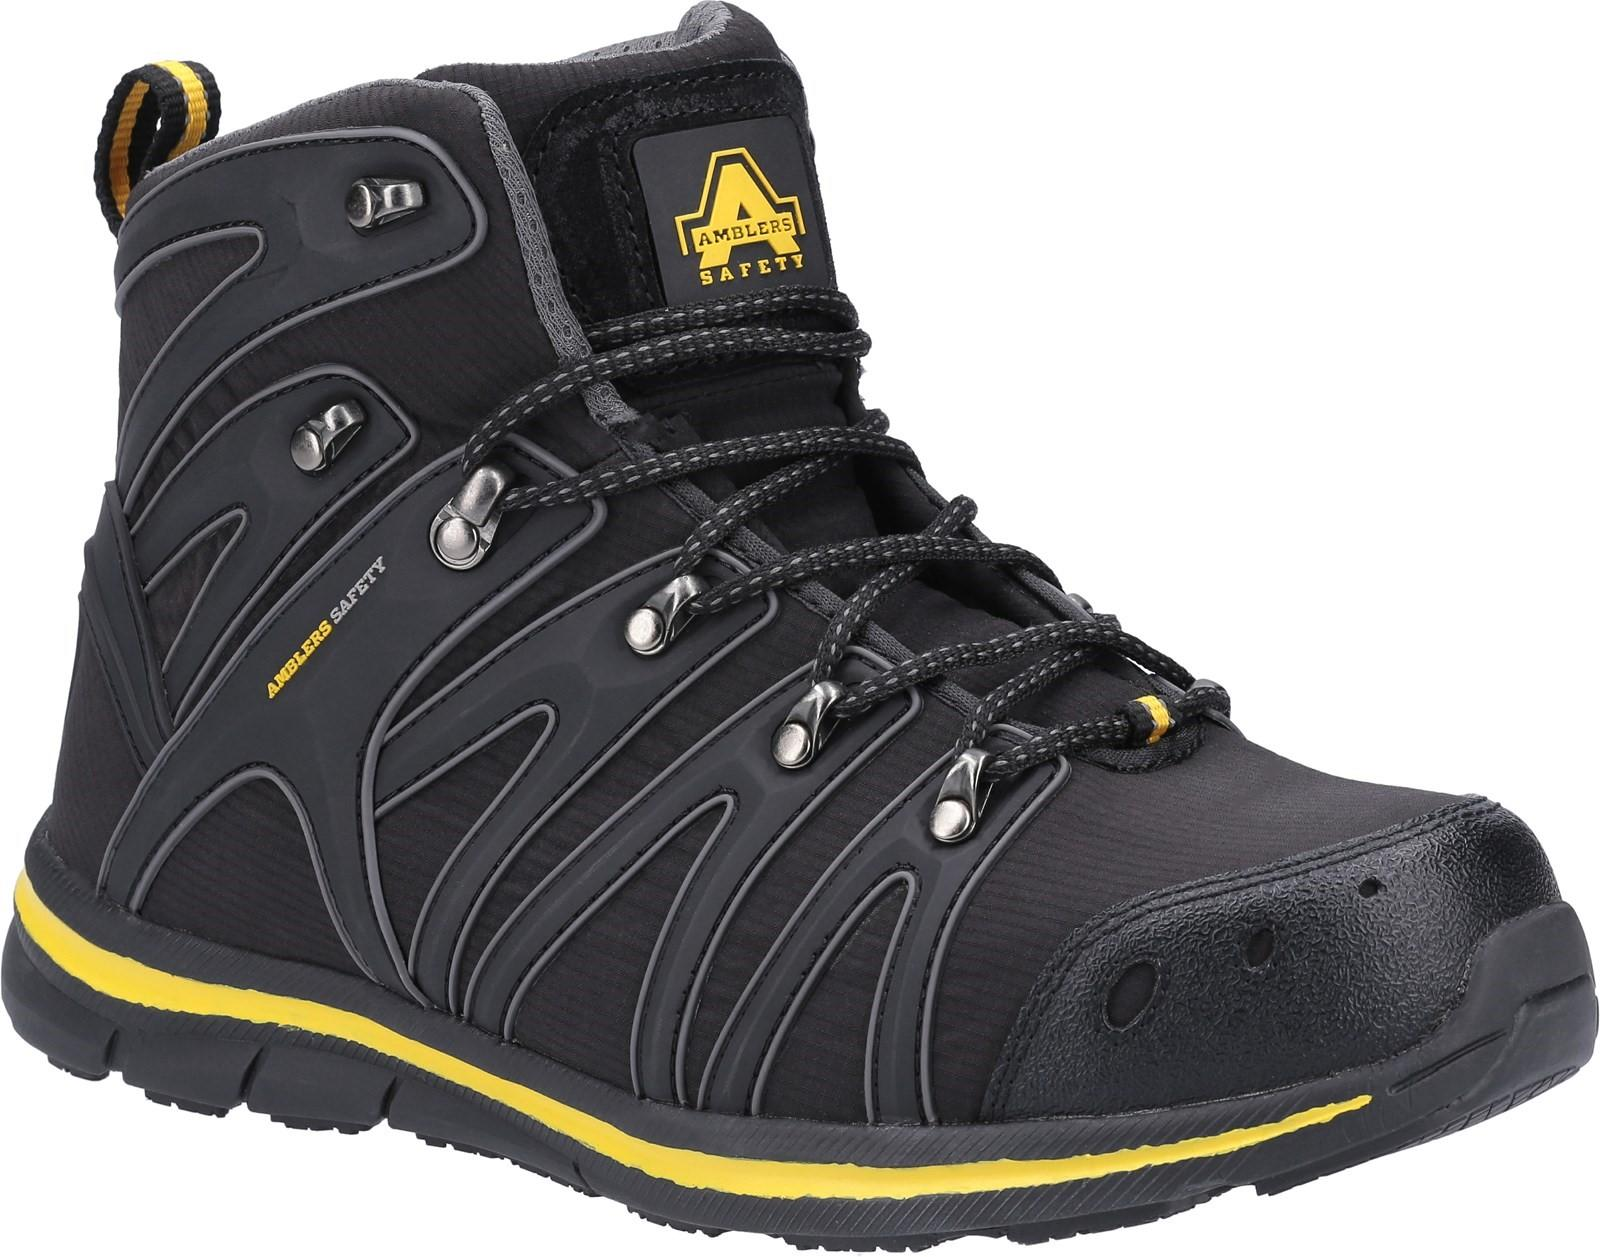 Vegan Friendly Edale S3 Safety Boot Main